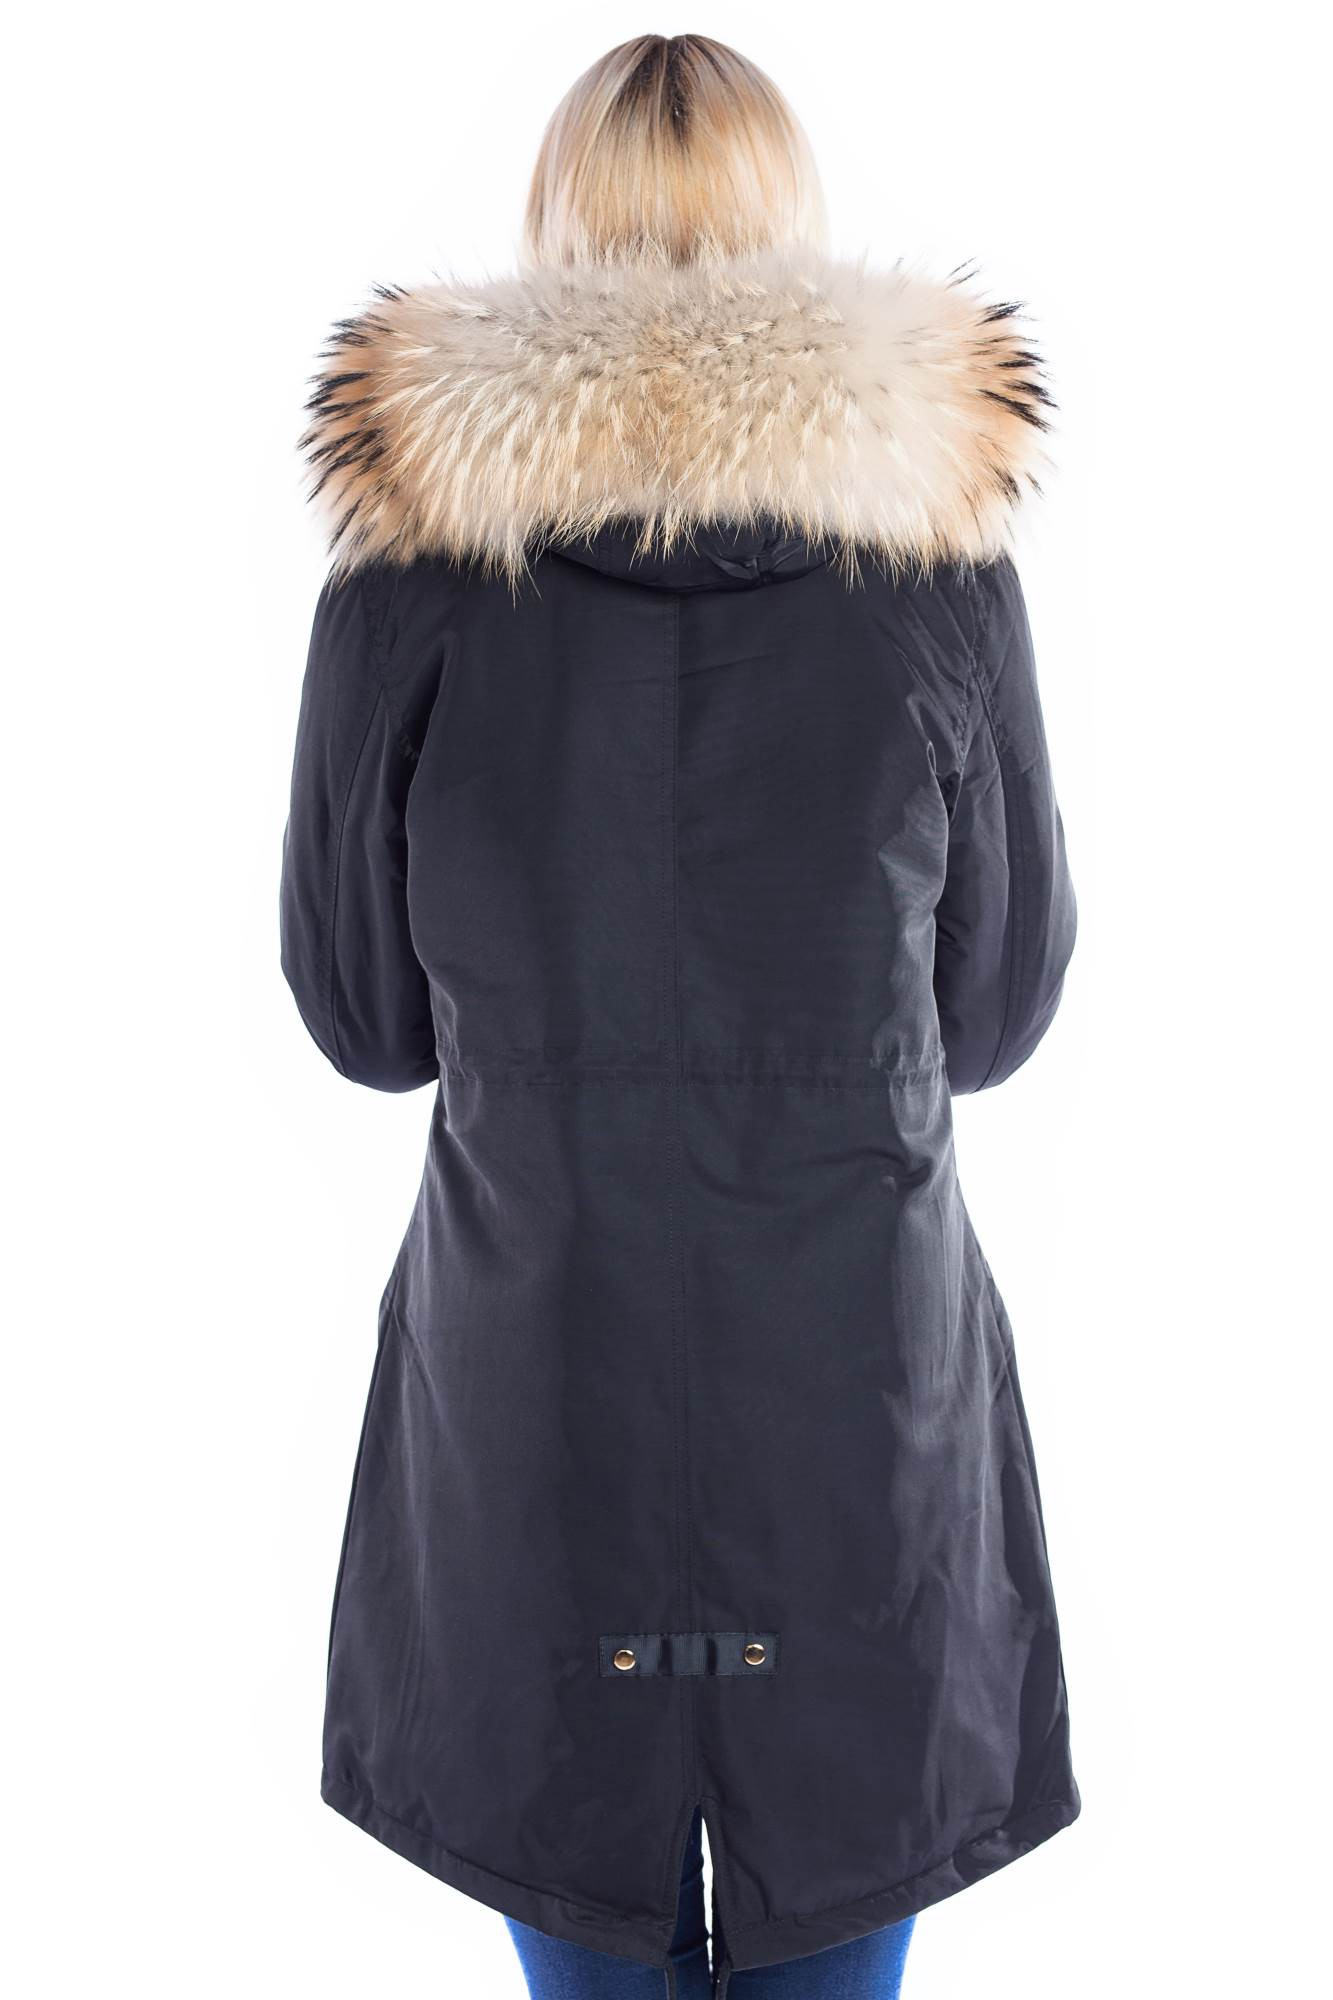 Kissen Fell Parka Mit Fellkapuze Xxl Natur Braun Fashion Blogger Style